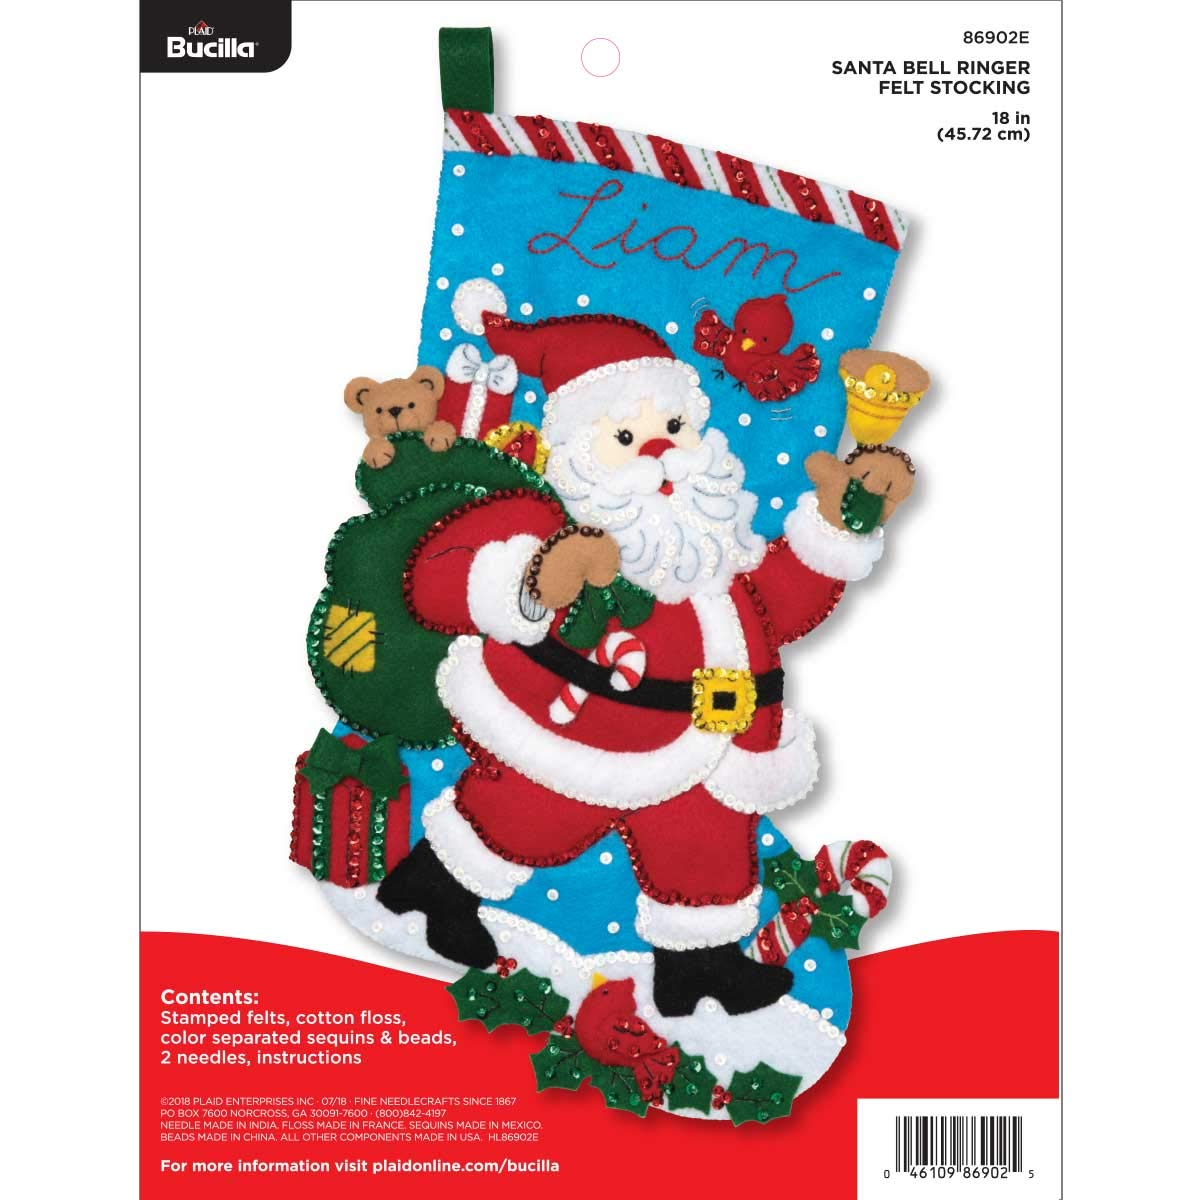 Bucilla 86902E Felt Applique Christmas Stocking Kit, 18'',  Santa Bell Ringer by Bucilla